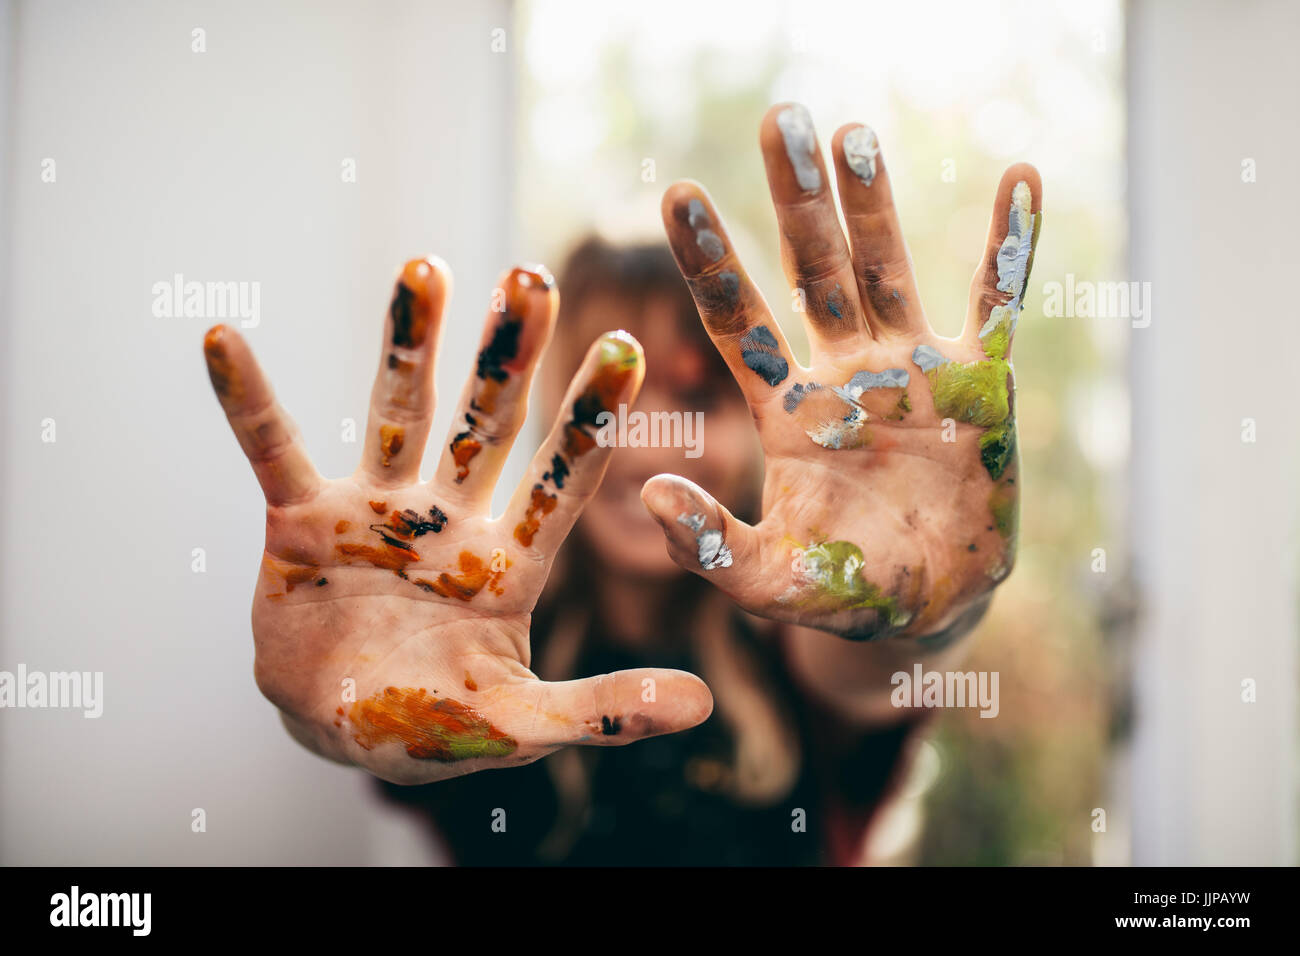 Close up of female artist montrant ses mains malpropres. Se concentrer sur les mains de femme peintre avec les couleurs. Photo Stock